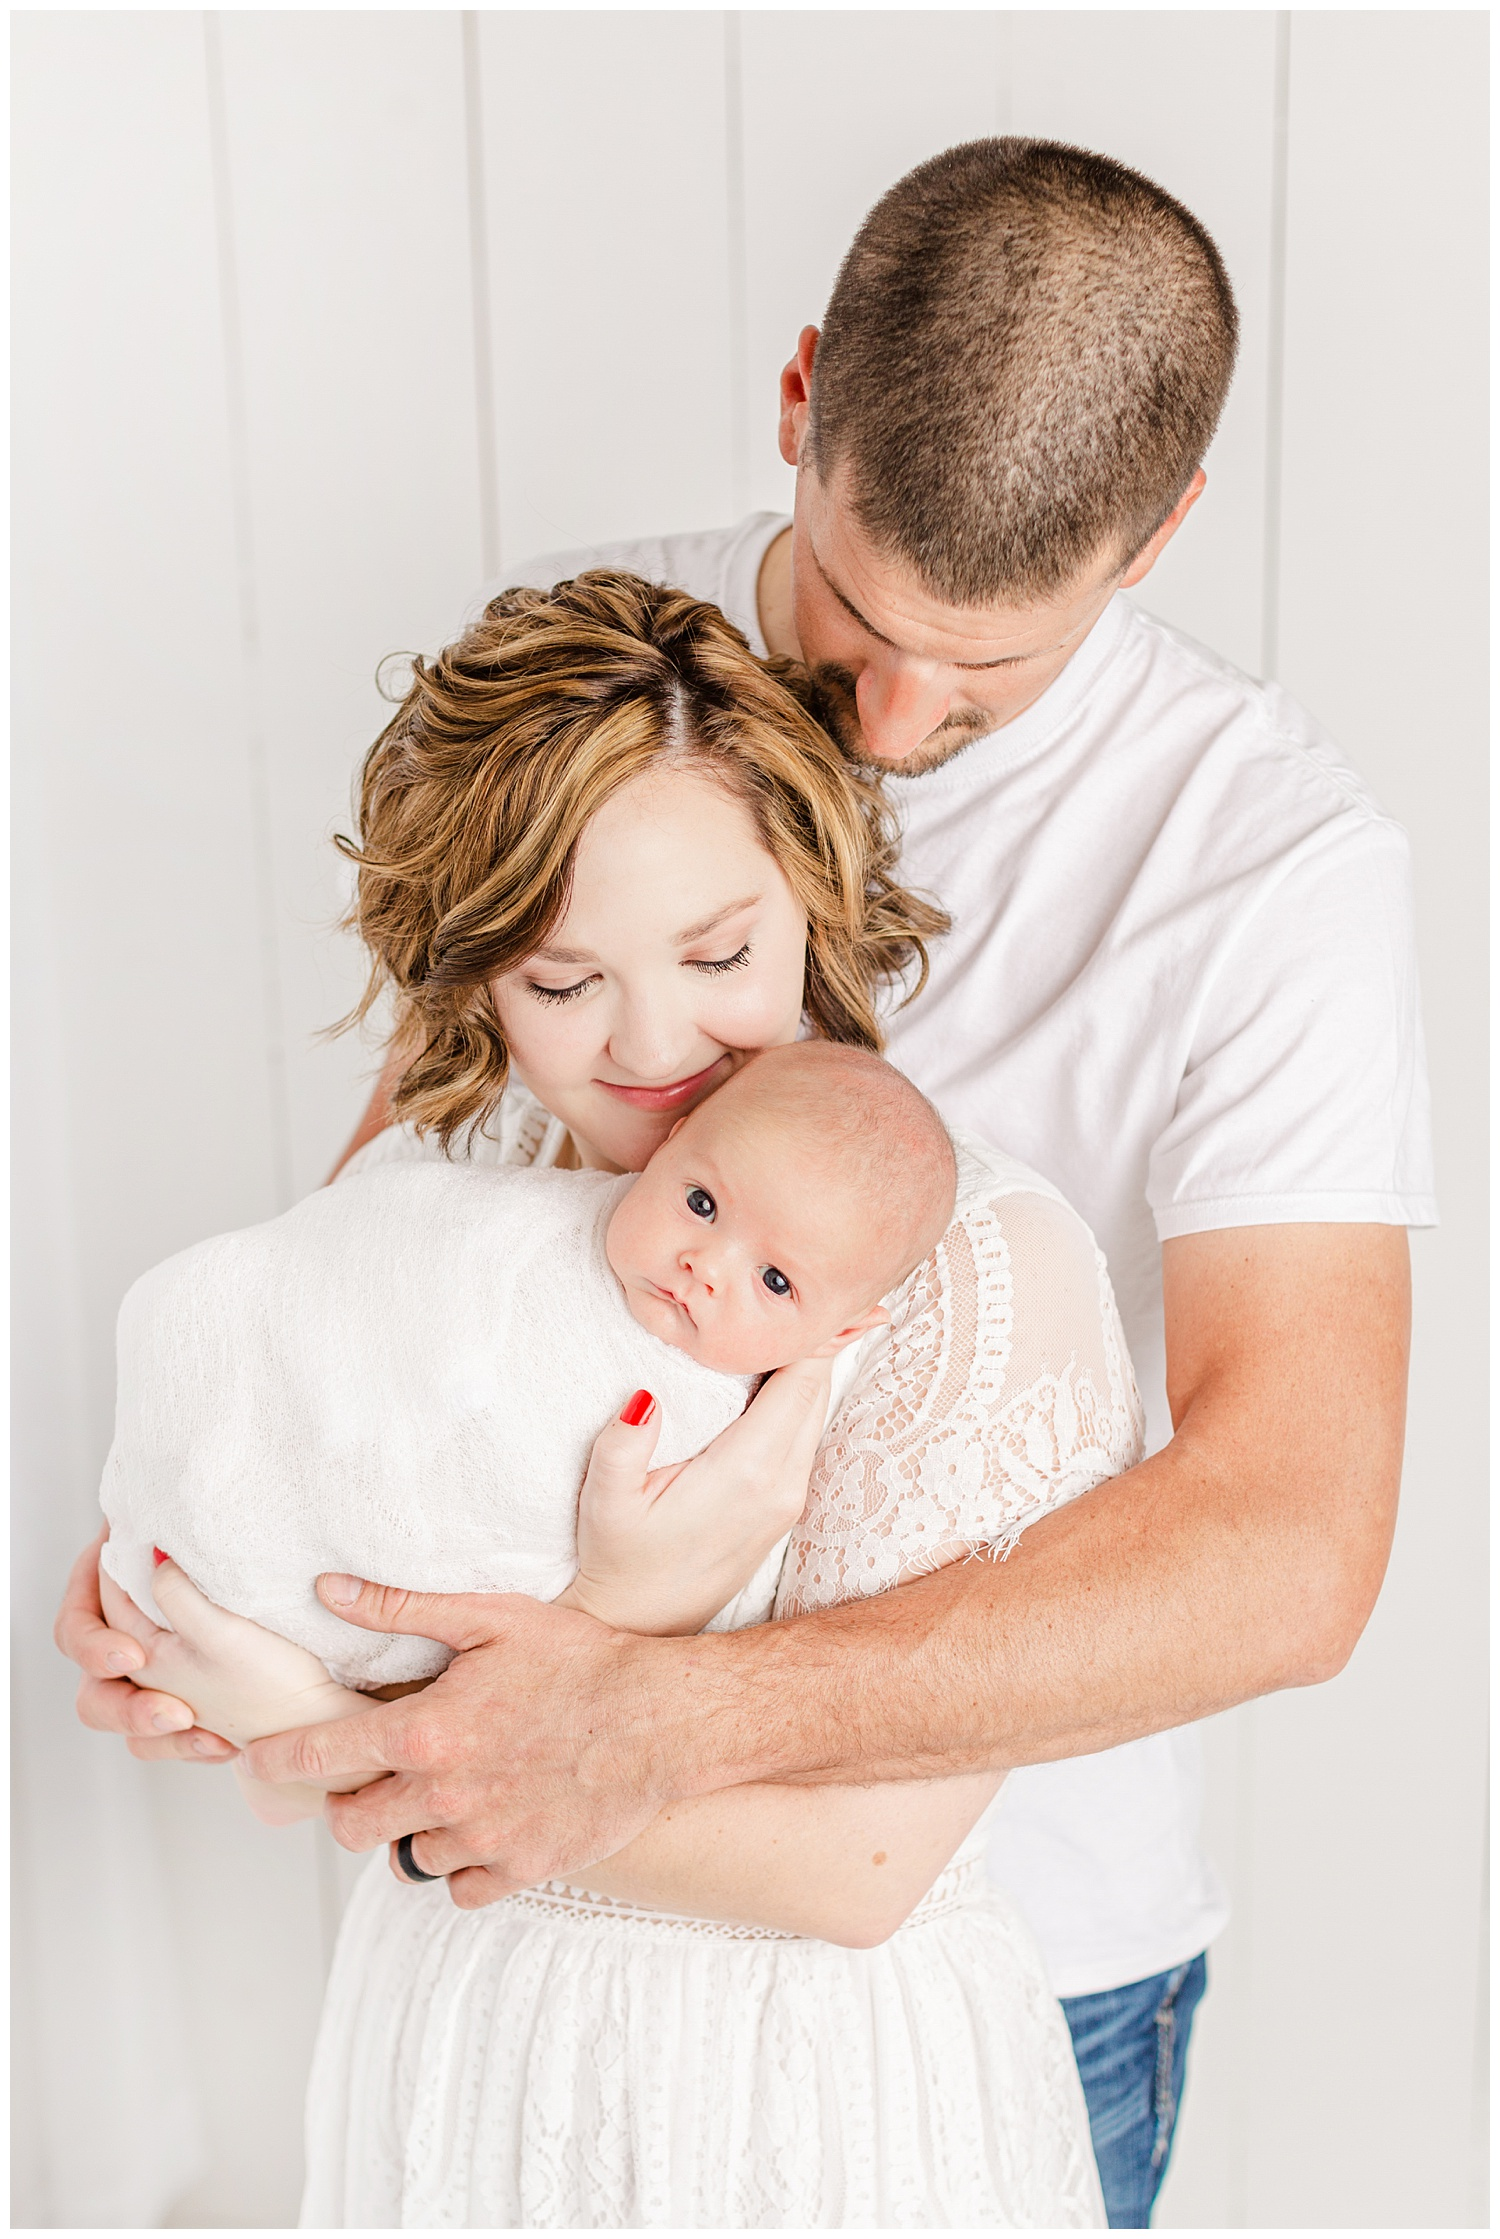 Bree and Josh dressed in white snuggle their new baby boy | CB Studio